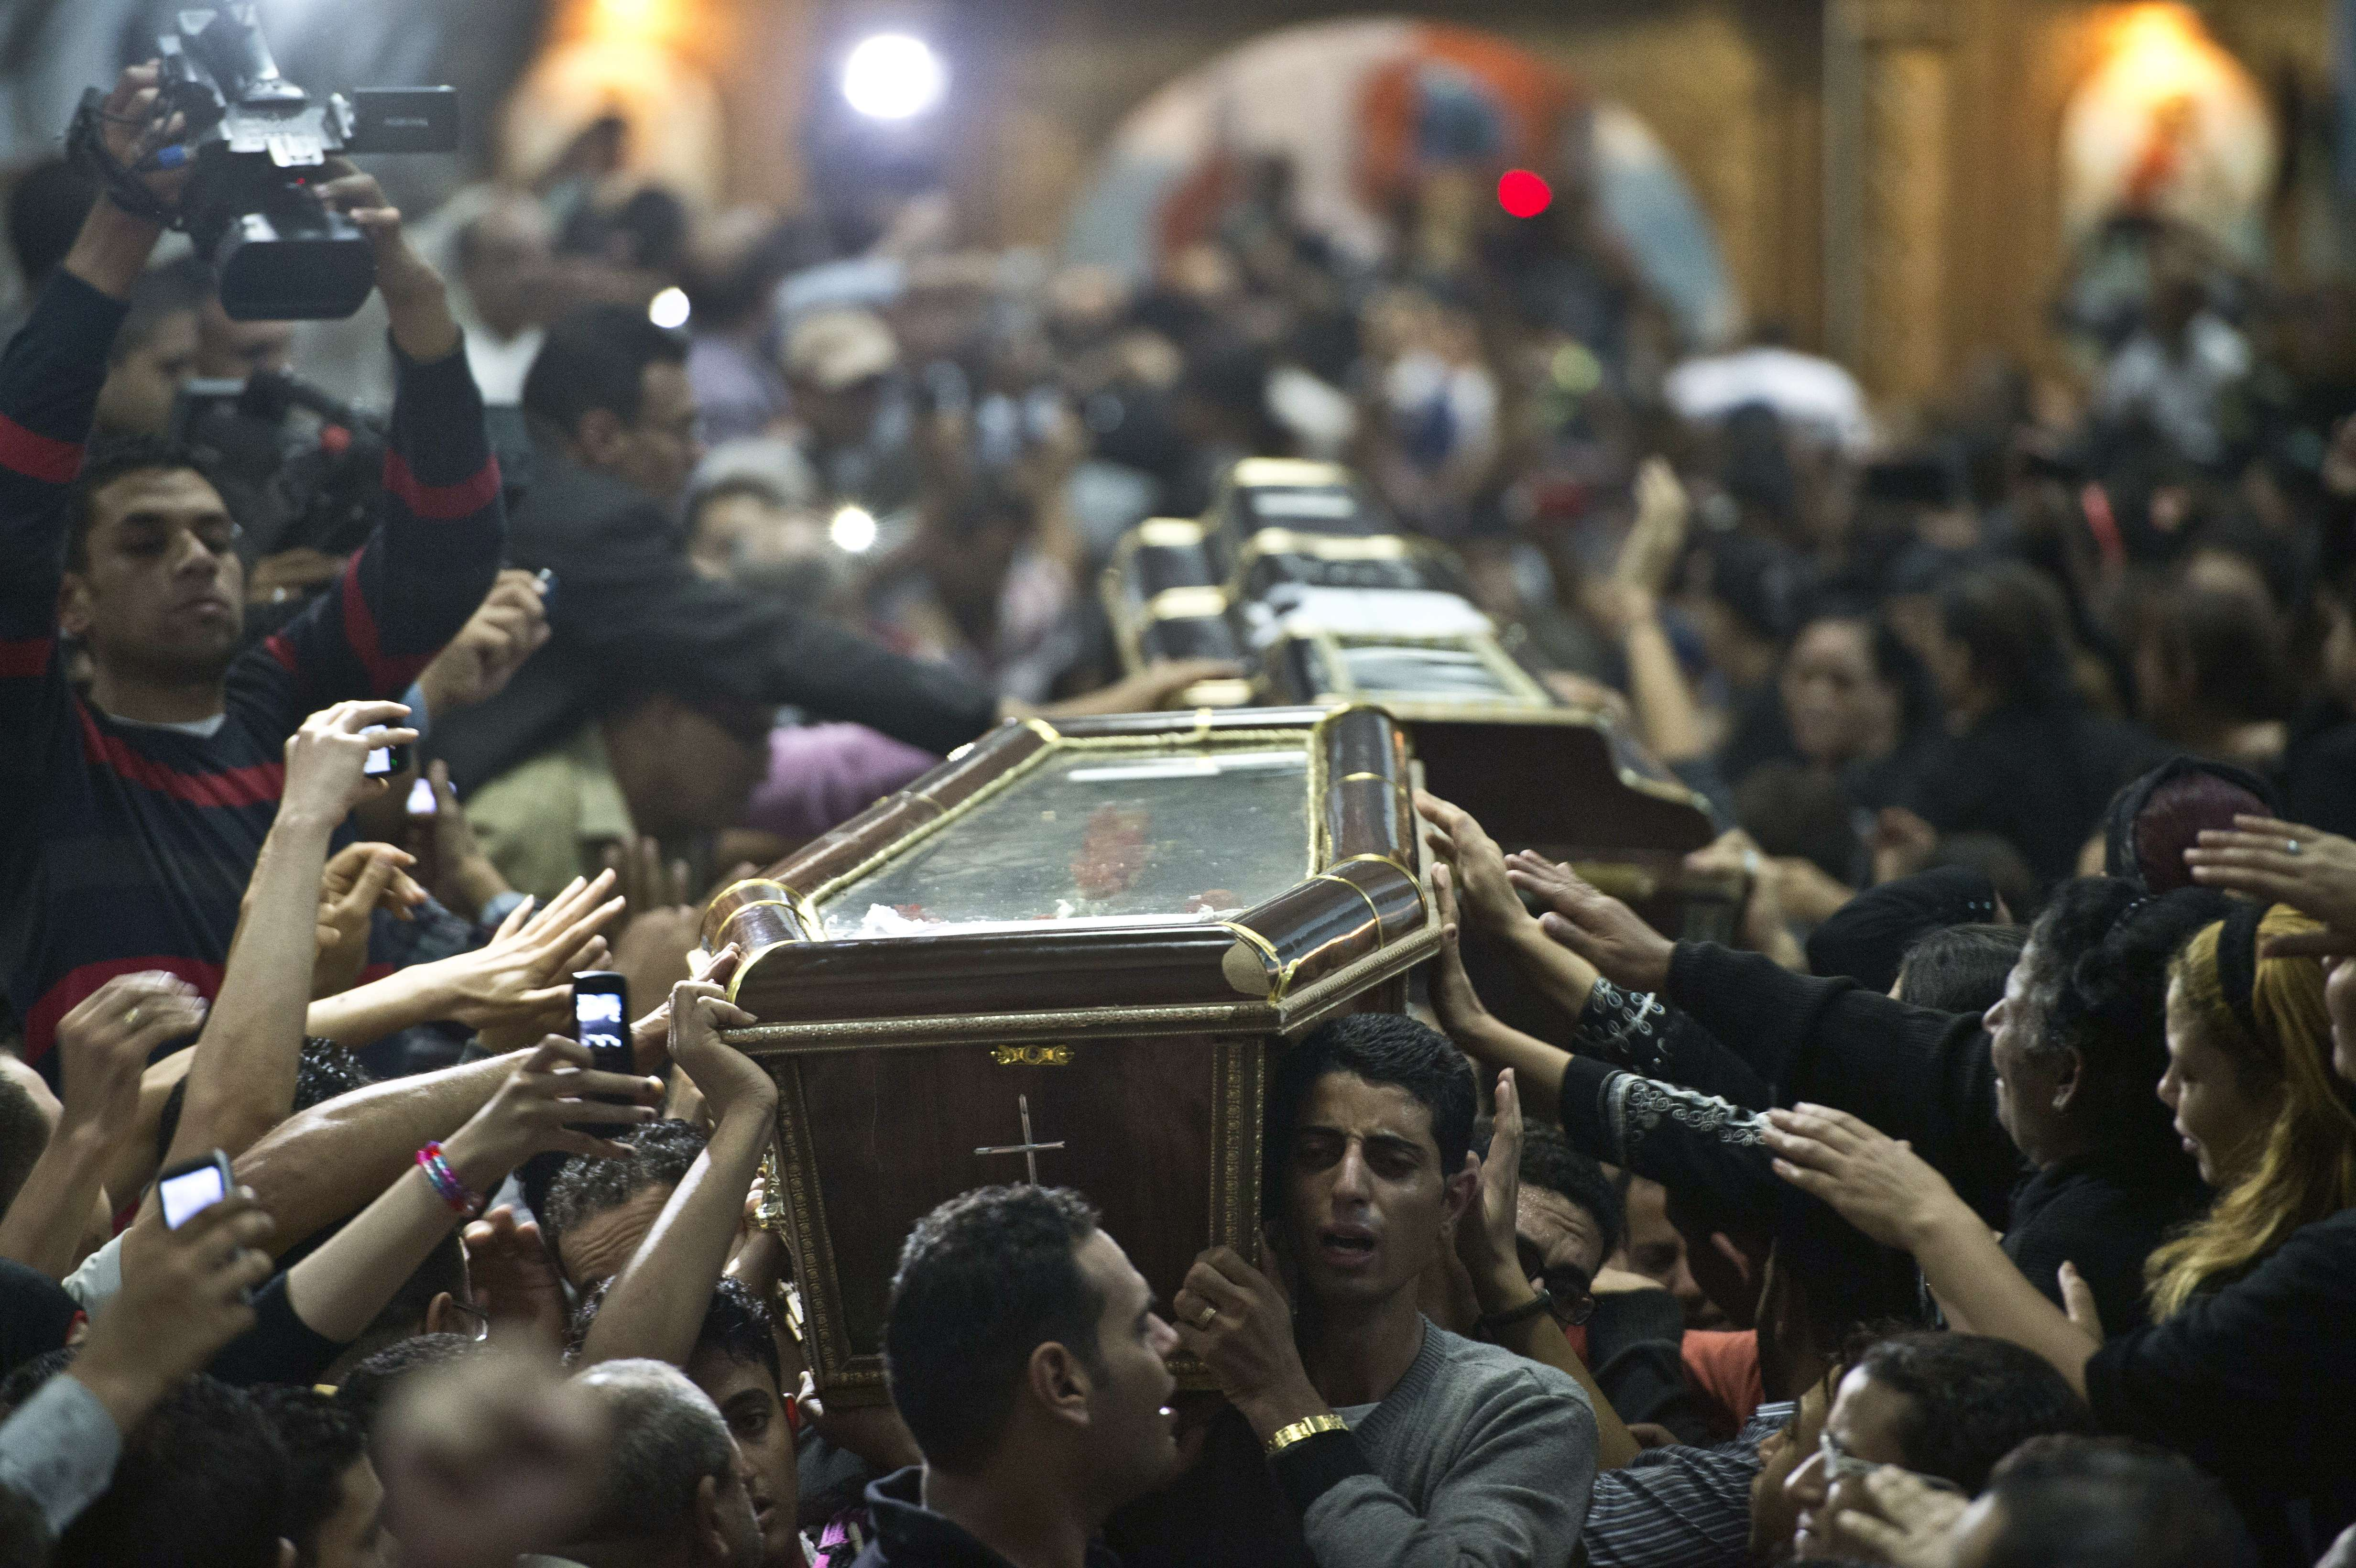 Egyptian Copts carry four coffins down the aisle of the Virgin Mary Coptic Christian church in Cairo's working class neighbourhood of Al-Warrak, on October 21, 2013, as thousands attend the funeral of the victims, gunned down as they attended a wedding the previous evening at the same church.  (AFP PHOTO / KHALED DESOUKI)